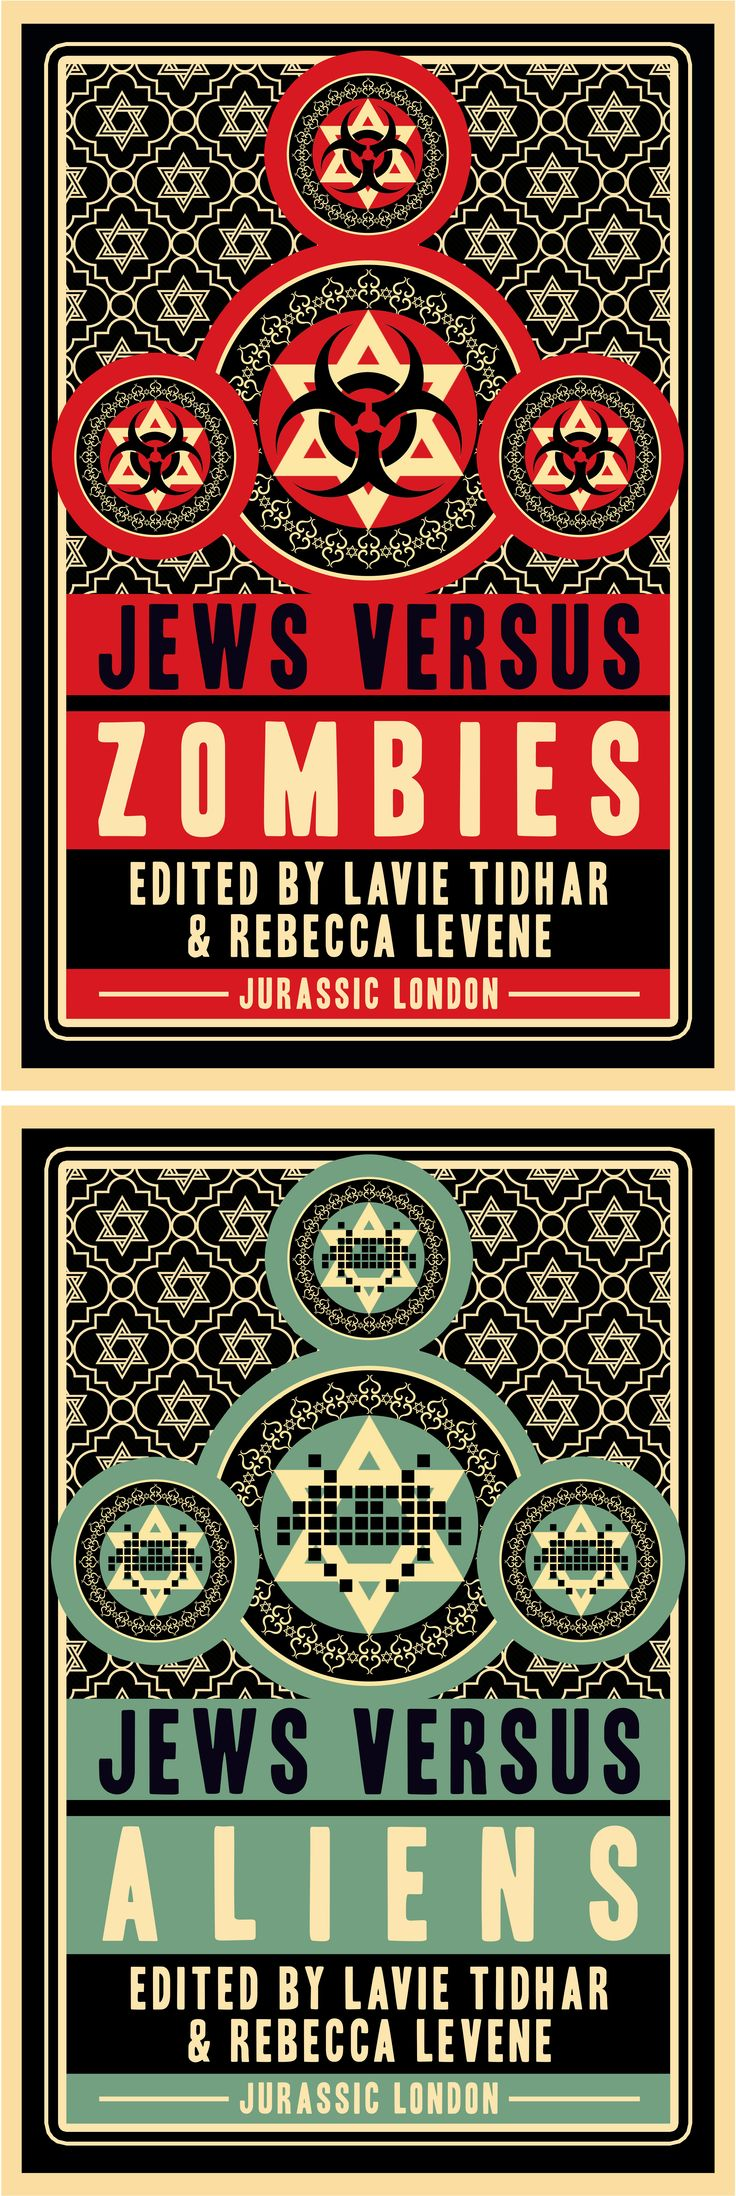 Jews Vs Zombies & Jews Vs Aliens. Edited by Lavie Tidhar & Rebecca Levene. Book cover design for Jurassic London.